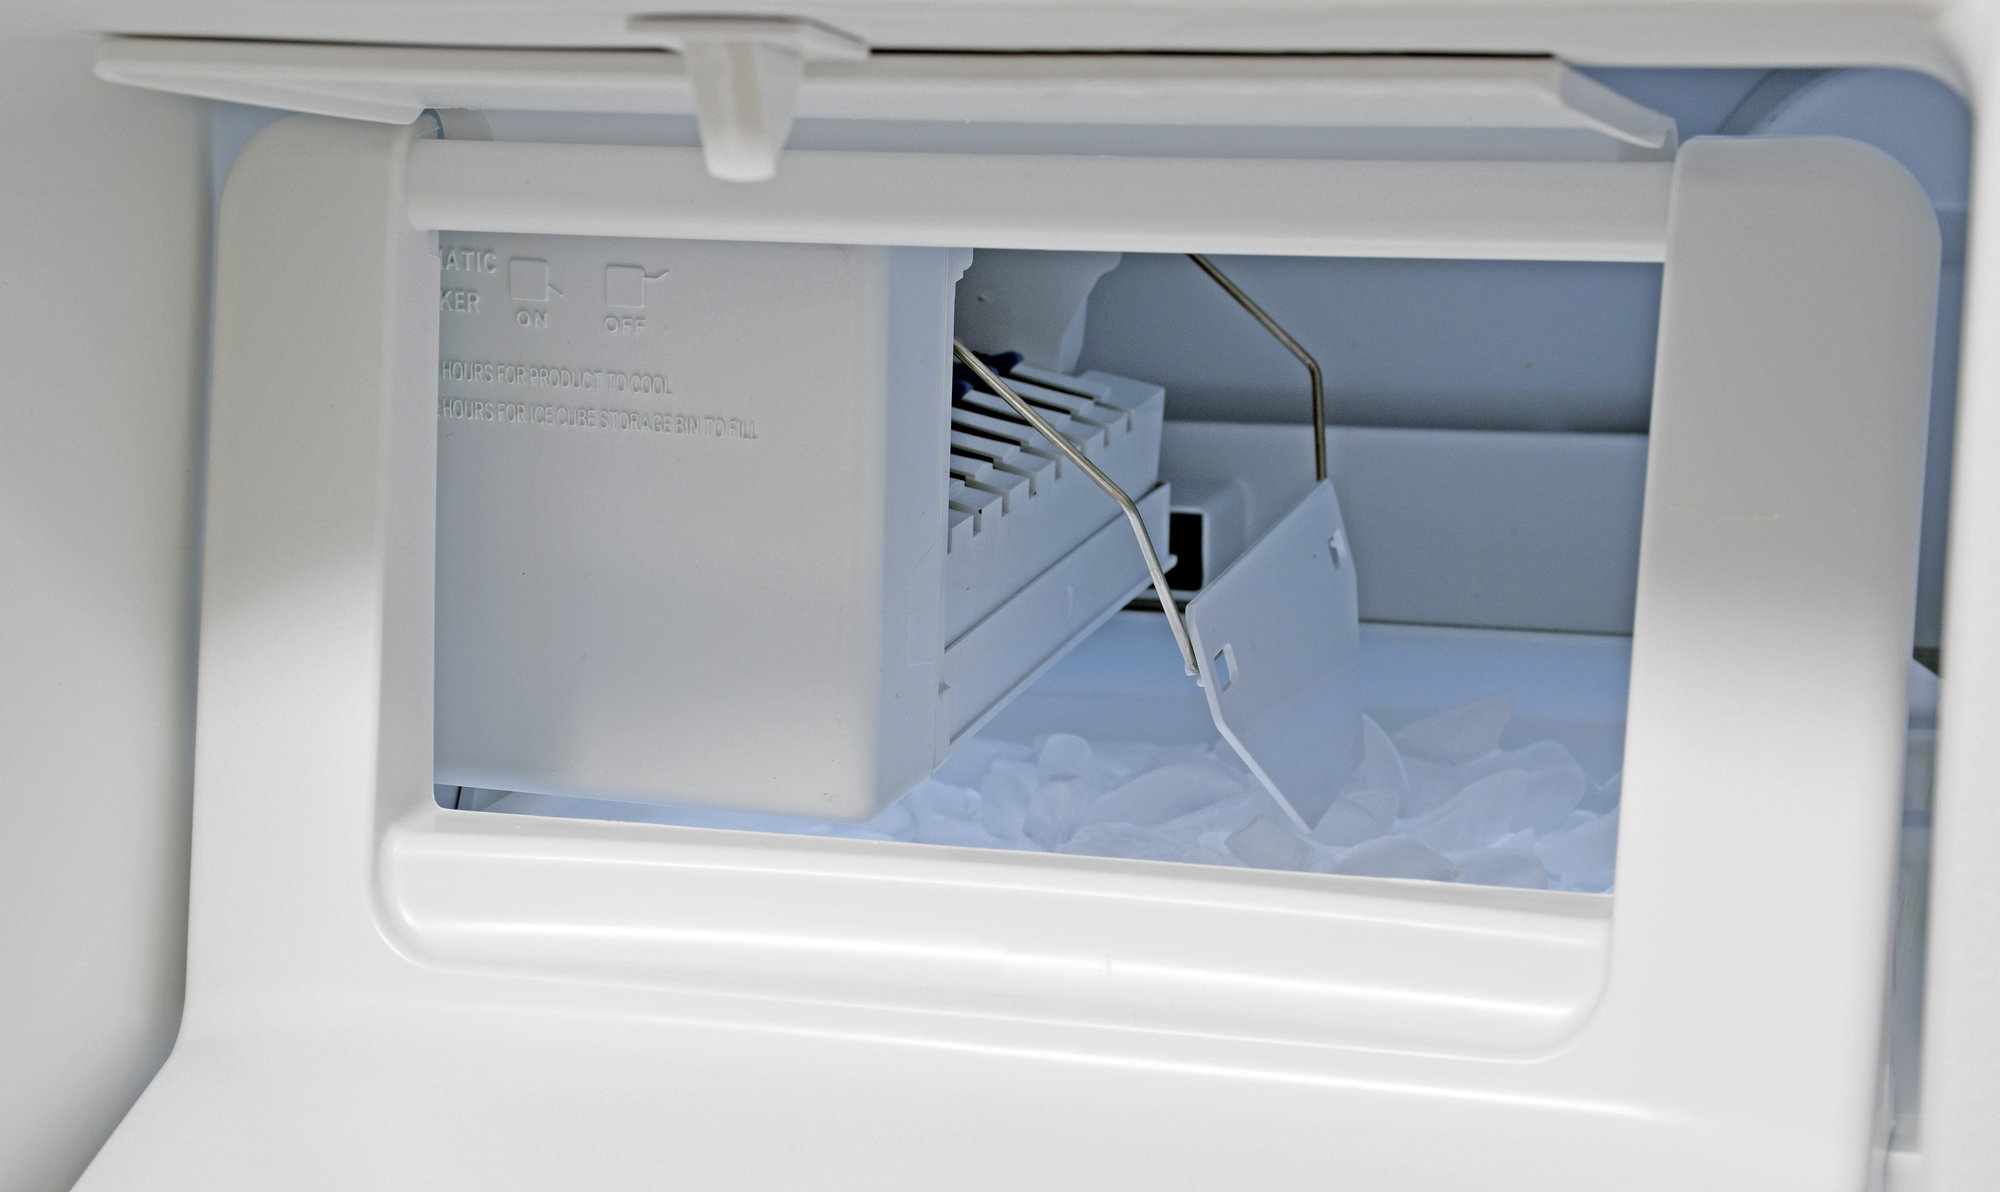 The front flap on the Kenmore 51122's icemaker is more convenient for turning it on or off rather than getting bulk ice.